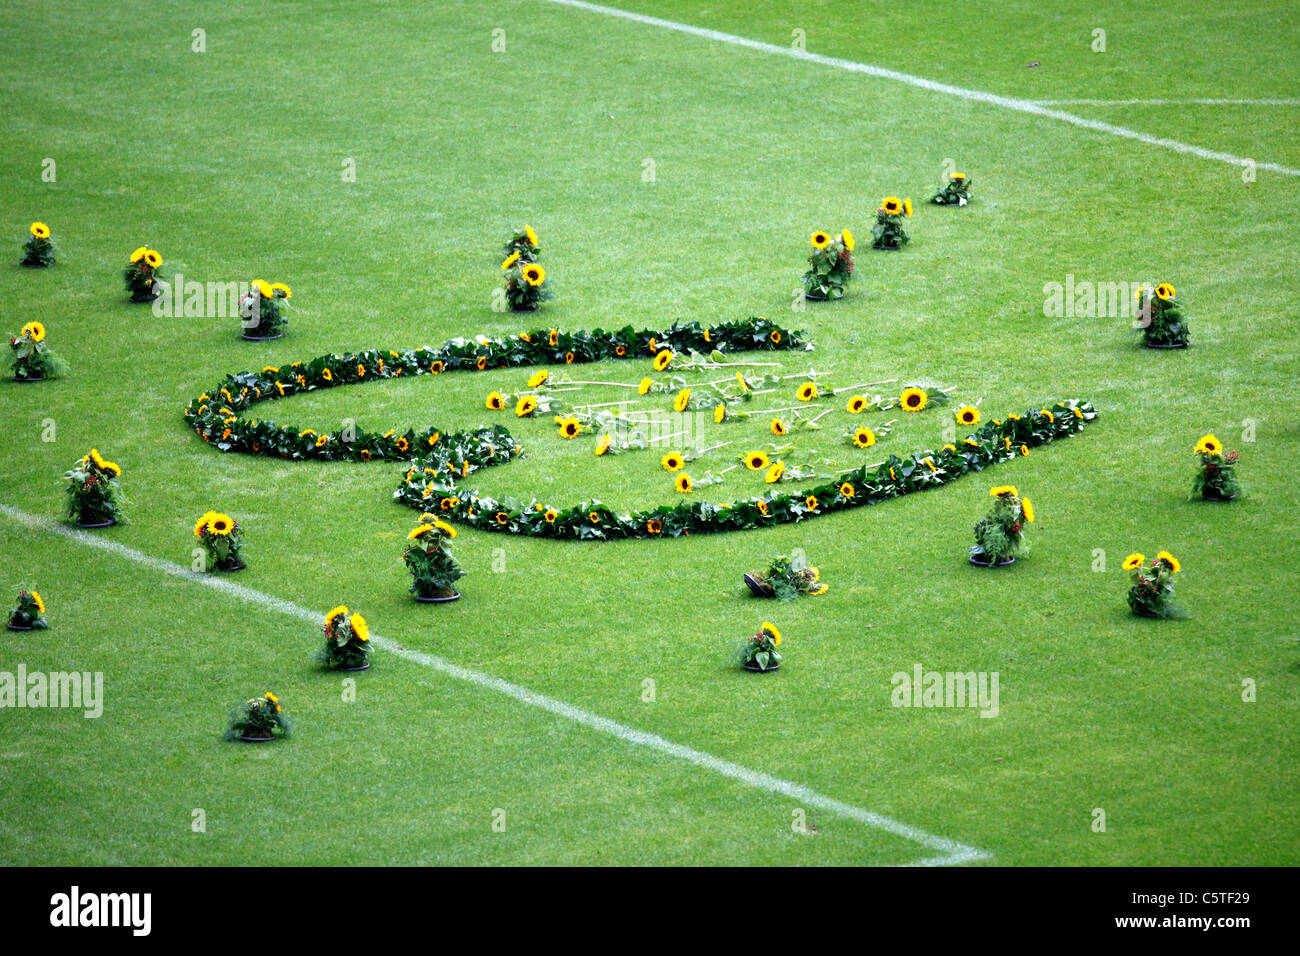 Memorial event, 1 year after the mass panic, during Loveparade techno music festival, in Duisburg. 21 people were - Stock Image